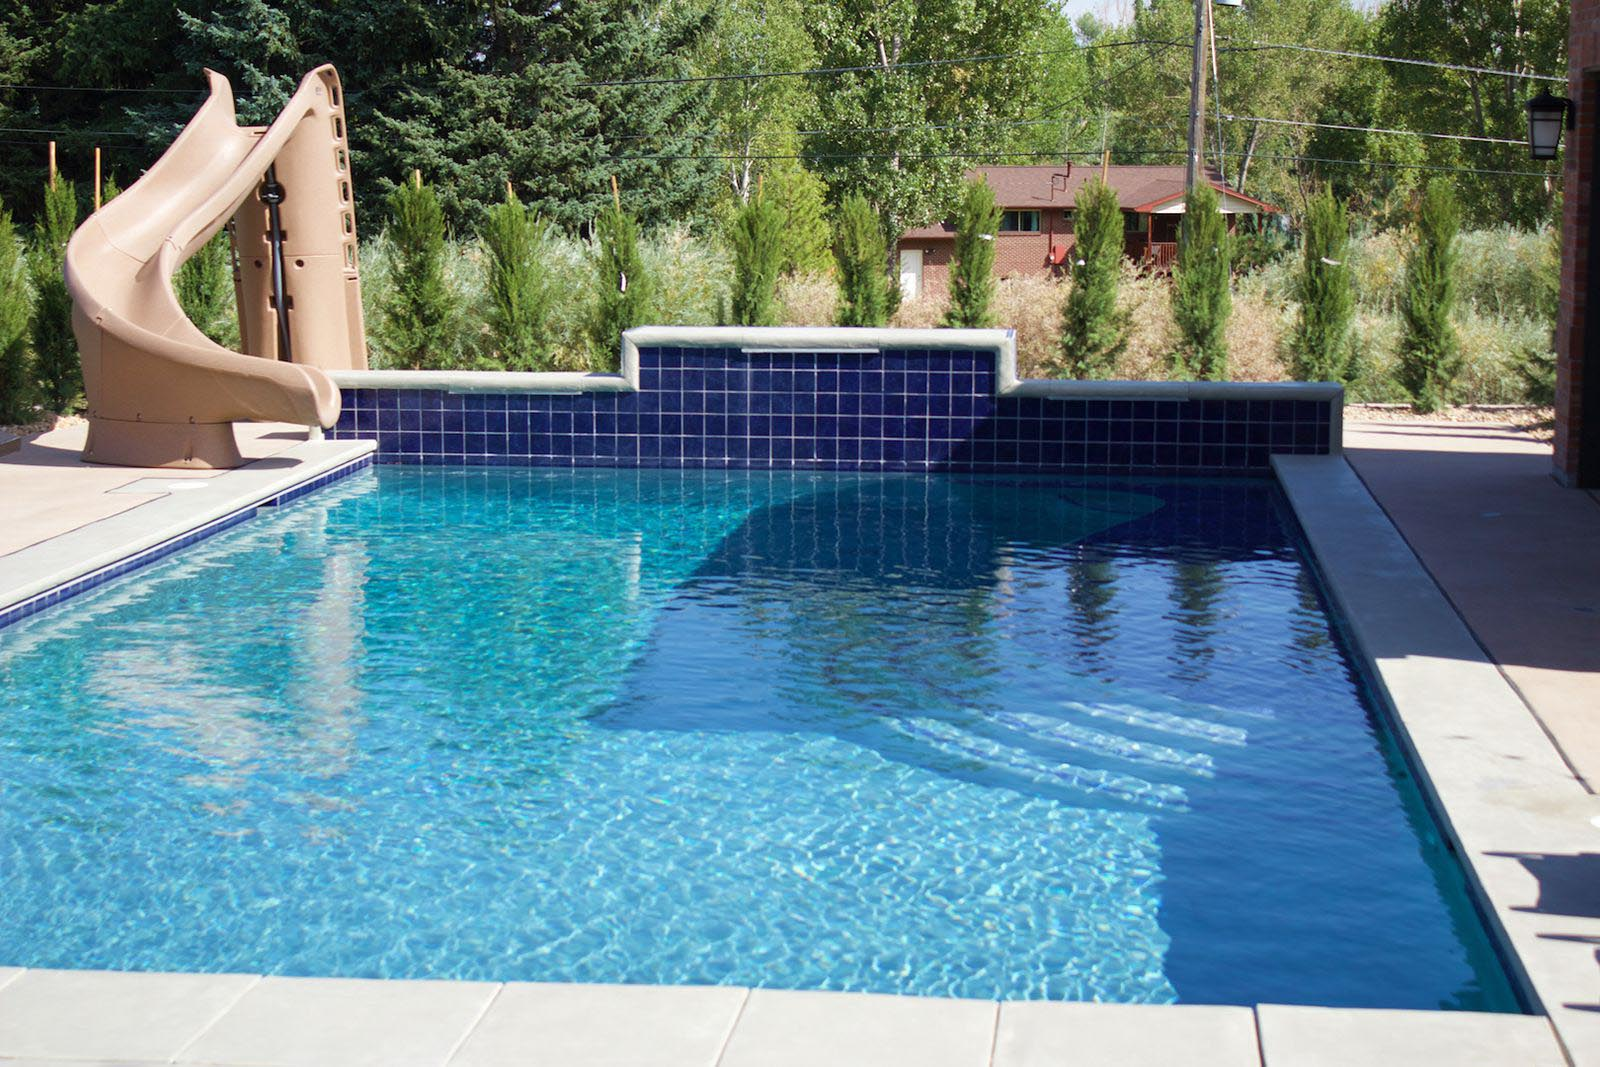 Slide for backyard pool backyard design ideas for Swimming pool slides